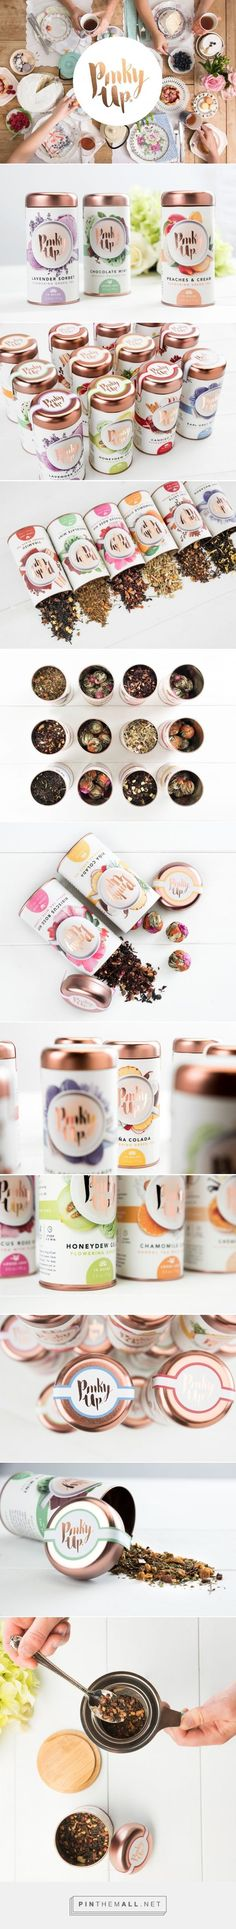 Pinky Up Tea / Packaging / Branding / Design / Ideas / Inspiration / Drink / Tea / Organic / Natural / Rose Gold / Copper / Botanical / Fruits / Flowers (Chocolate Art Graphics) Branding And Packaging, Fruit Packaging, Food Packaging Design, Pretty Packaging, Packaging Design Inspiration, Packaging Ideas, Design Ideas, Food Branding, Bottle Packaging